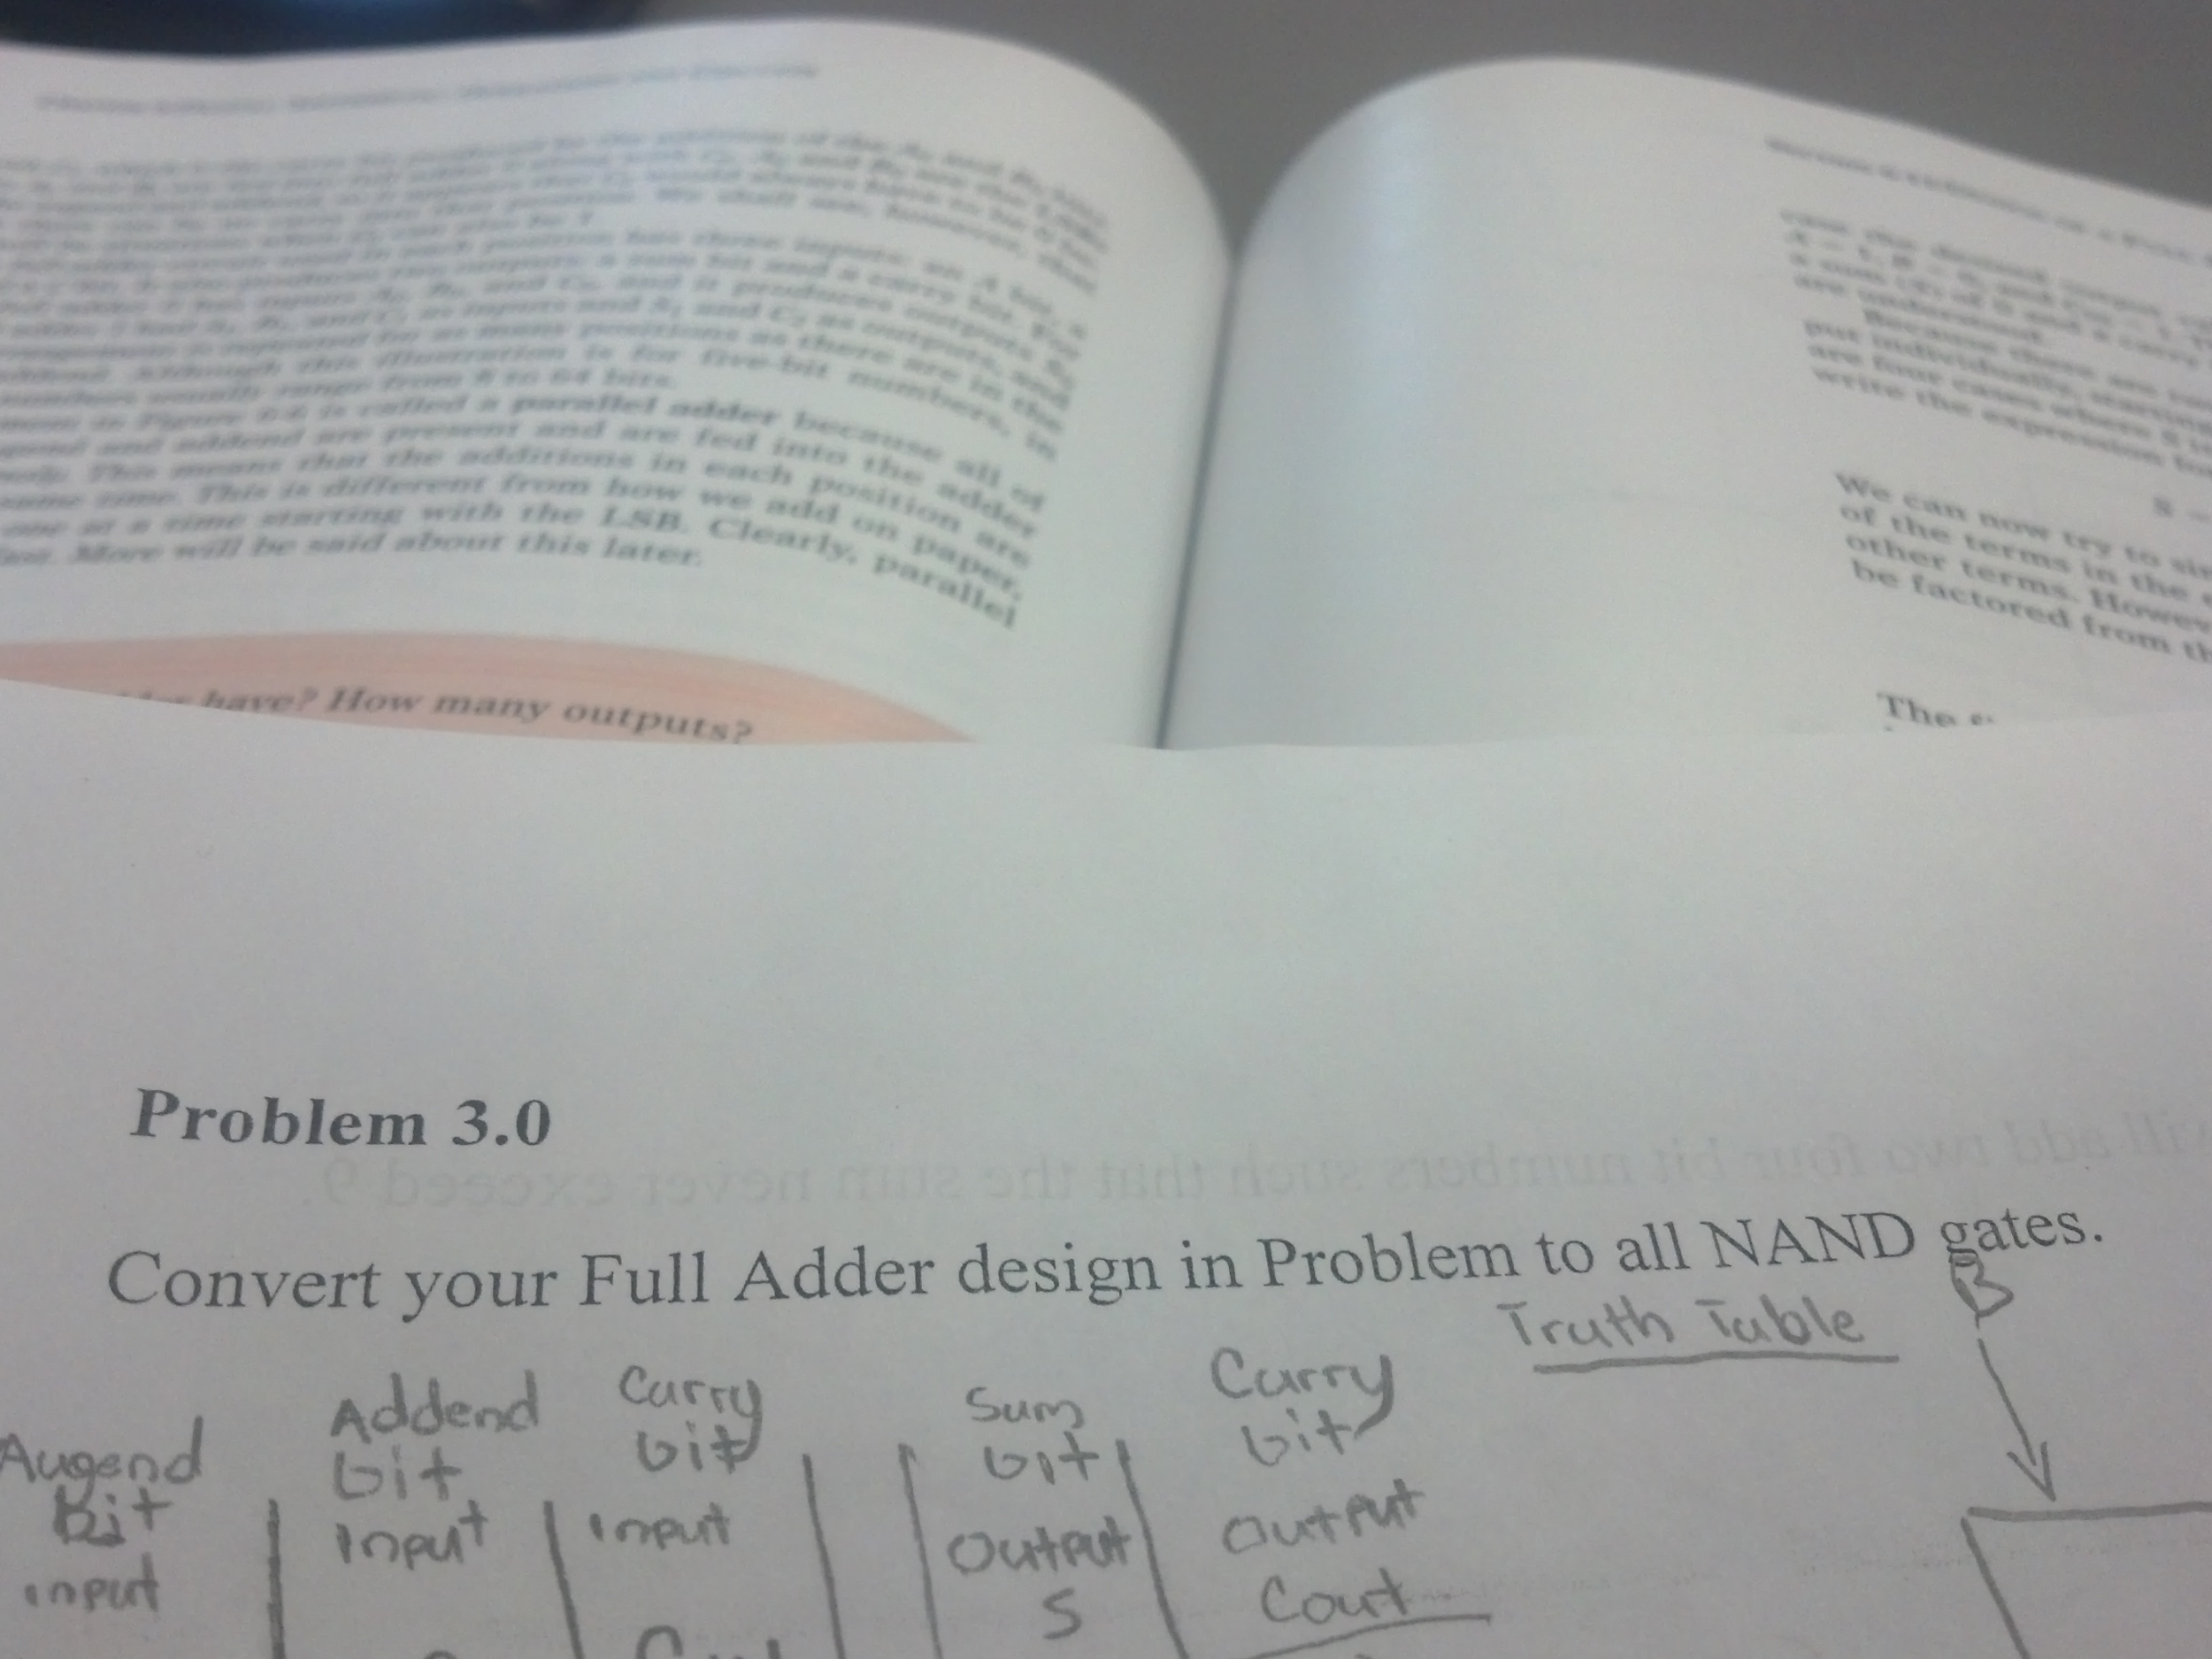 Convert your Full Adder design in Problem to all N